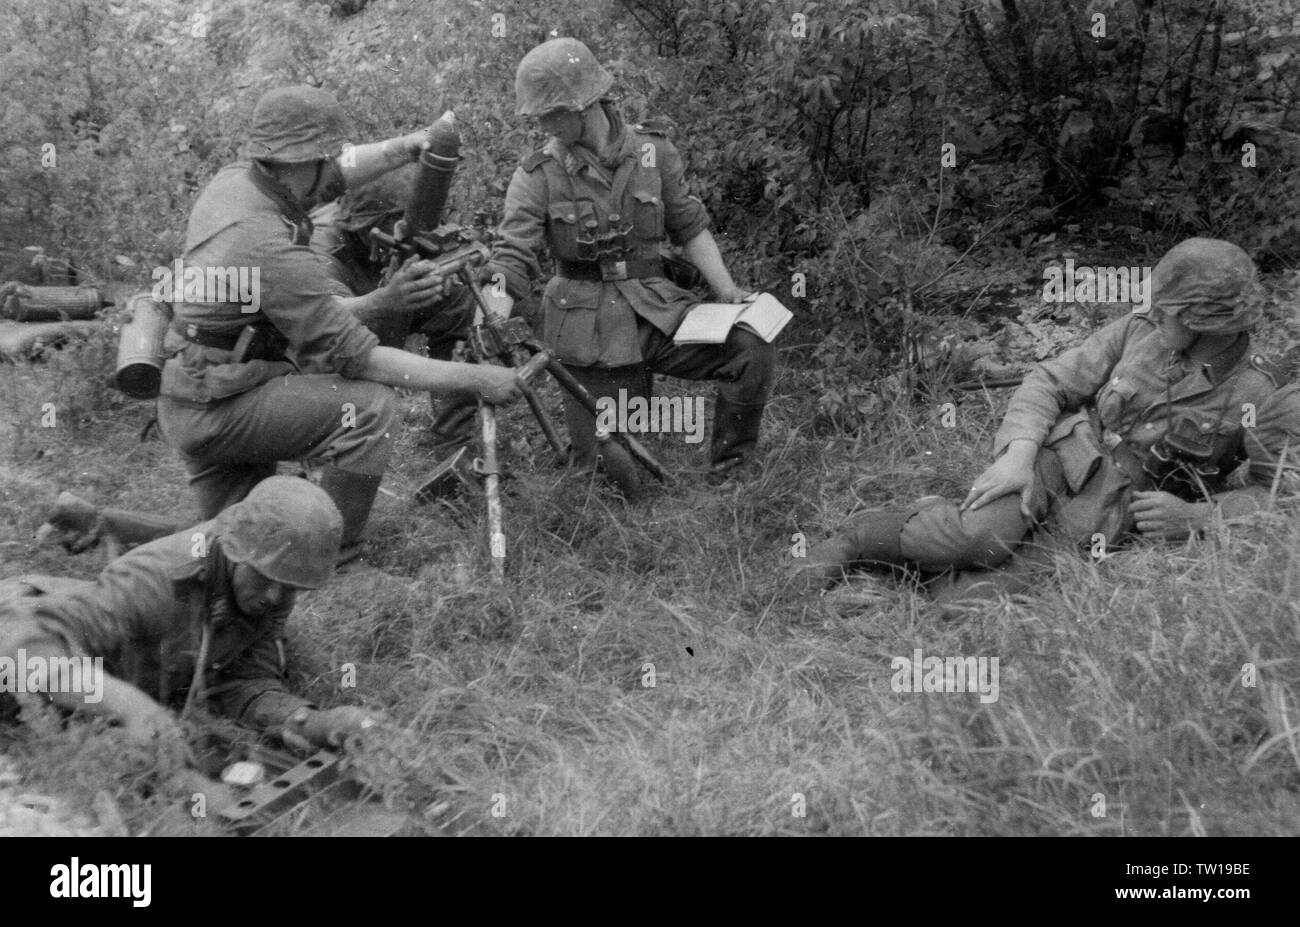 German Soldiers load a Mortar in France 1940 - Stock Image